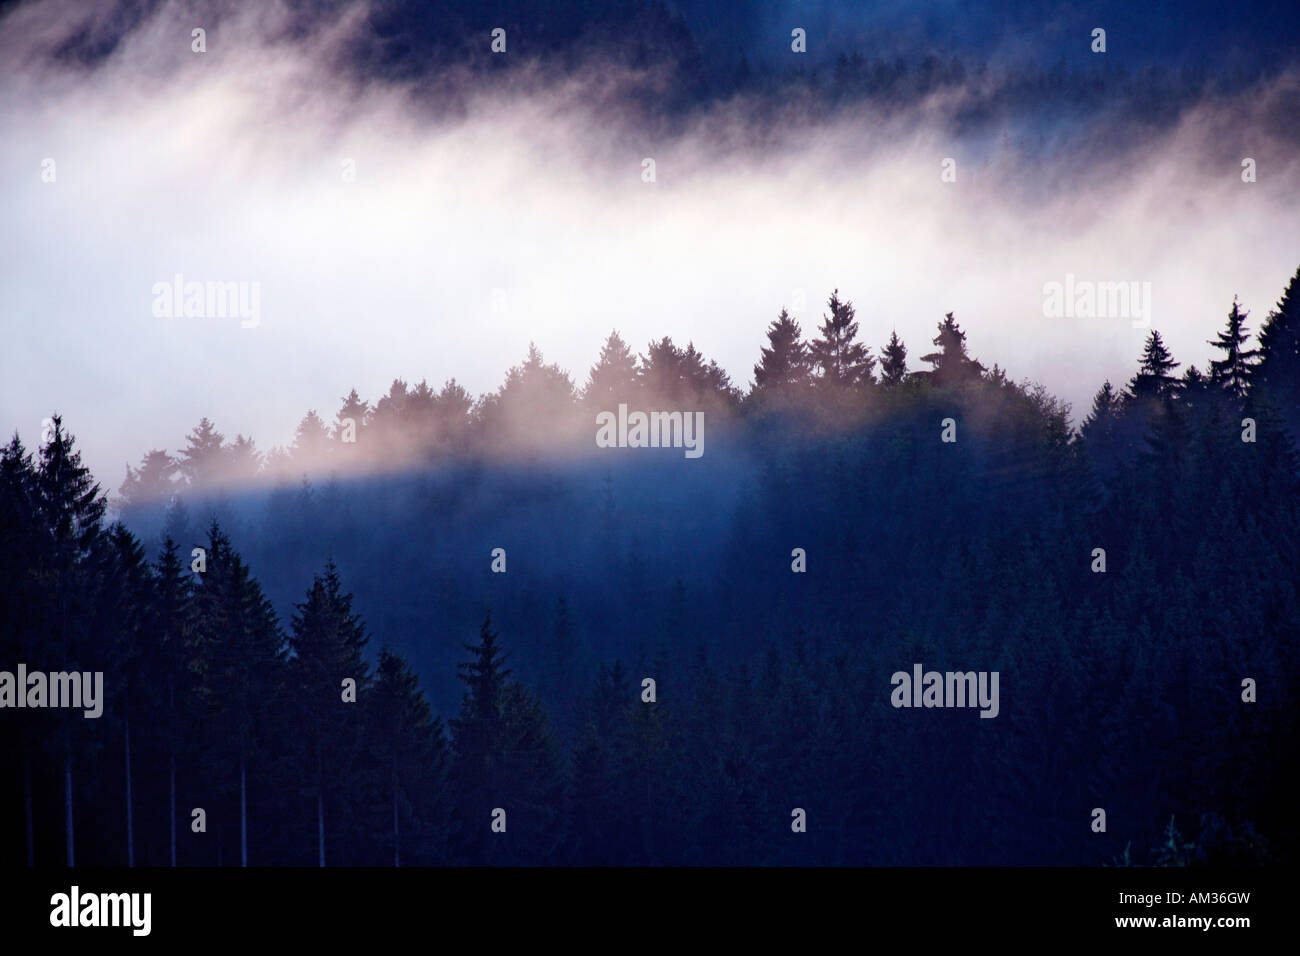 Fogbank over hilly landscape Stock Photo